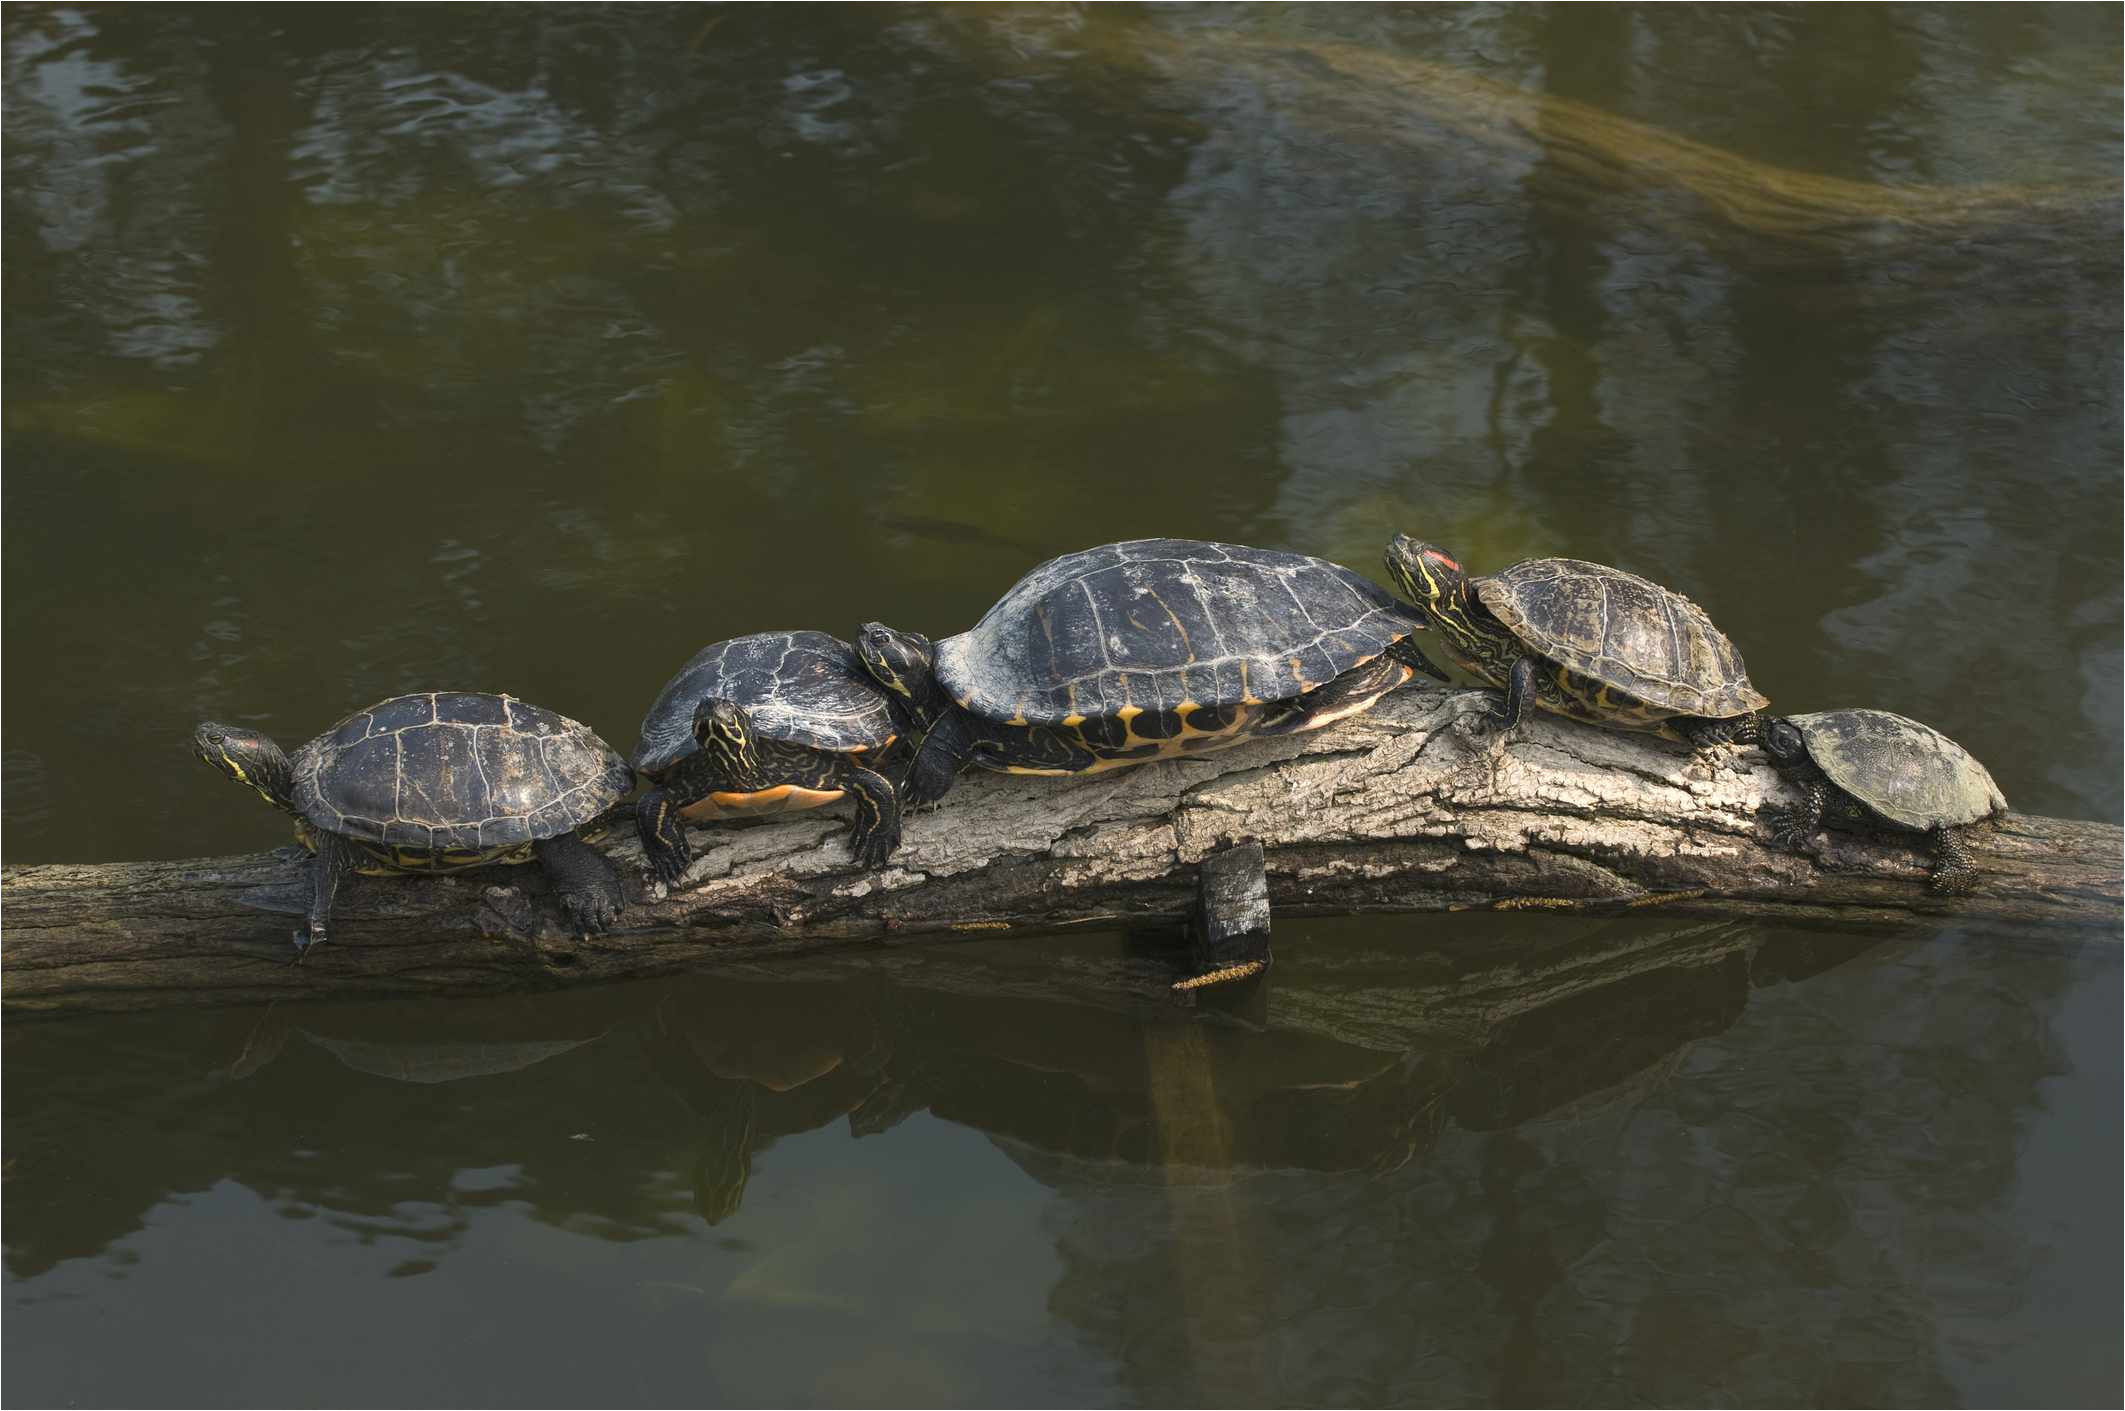 aquatic turtles lined up on a log